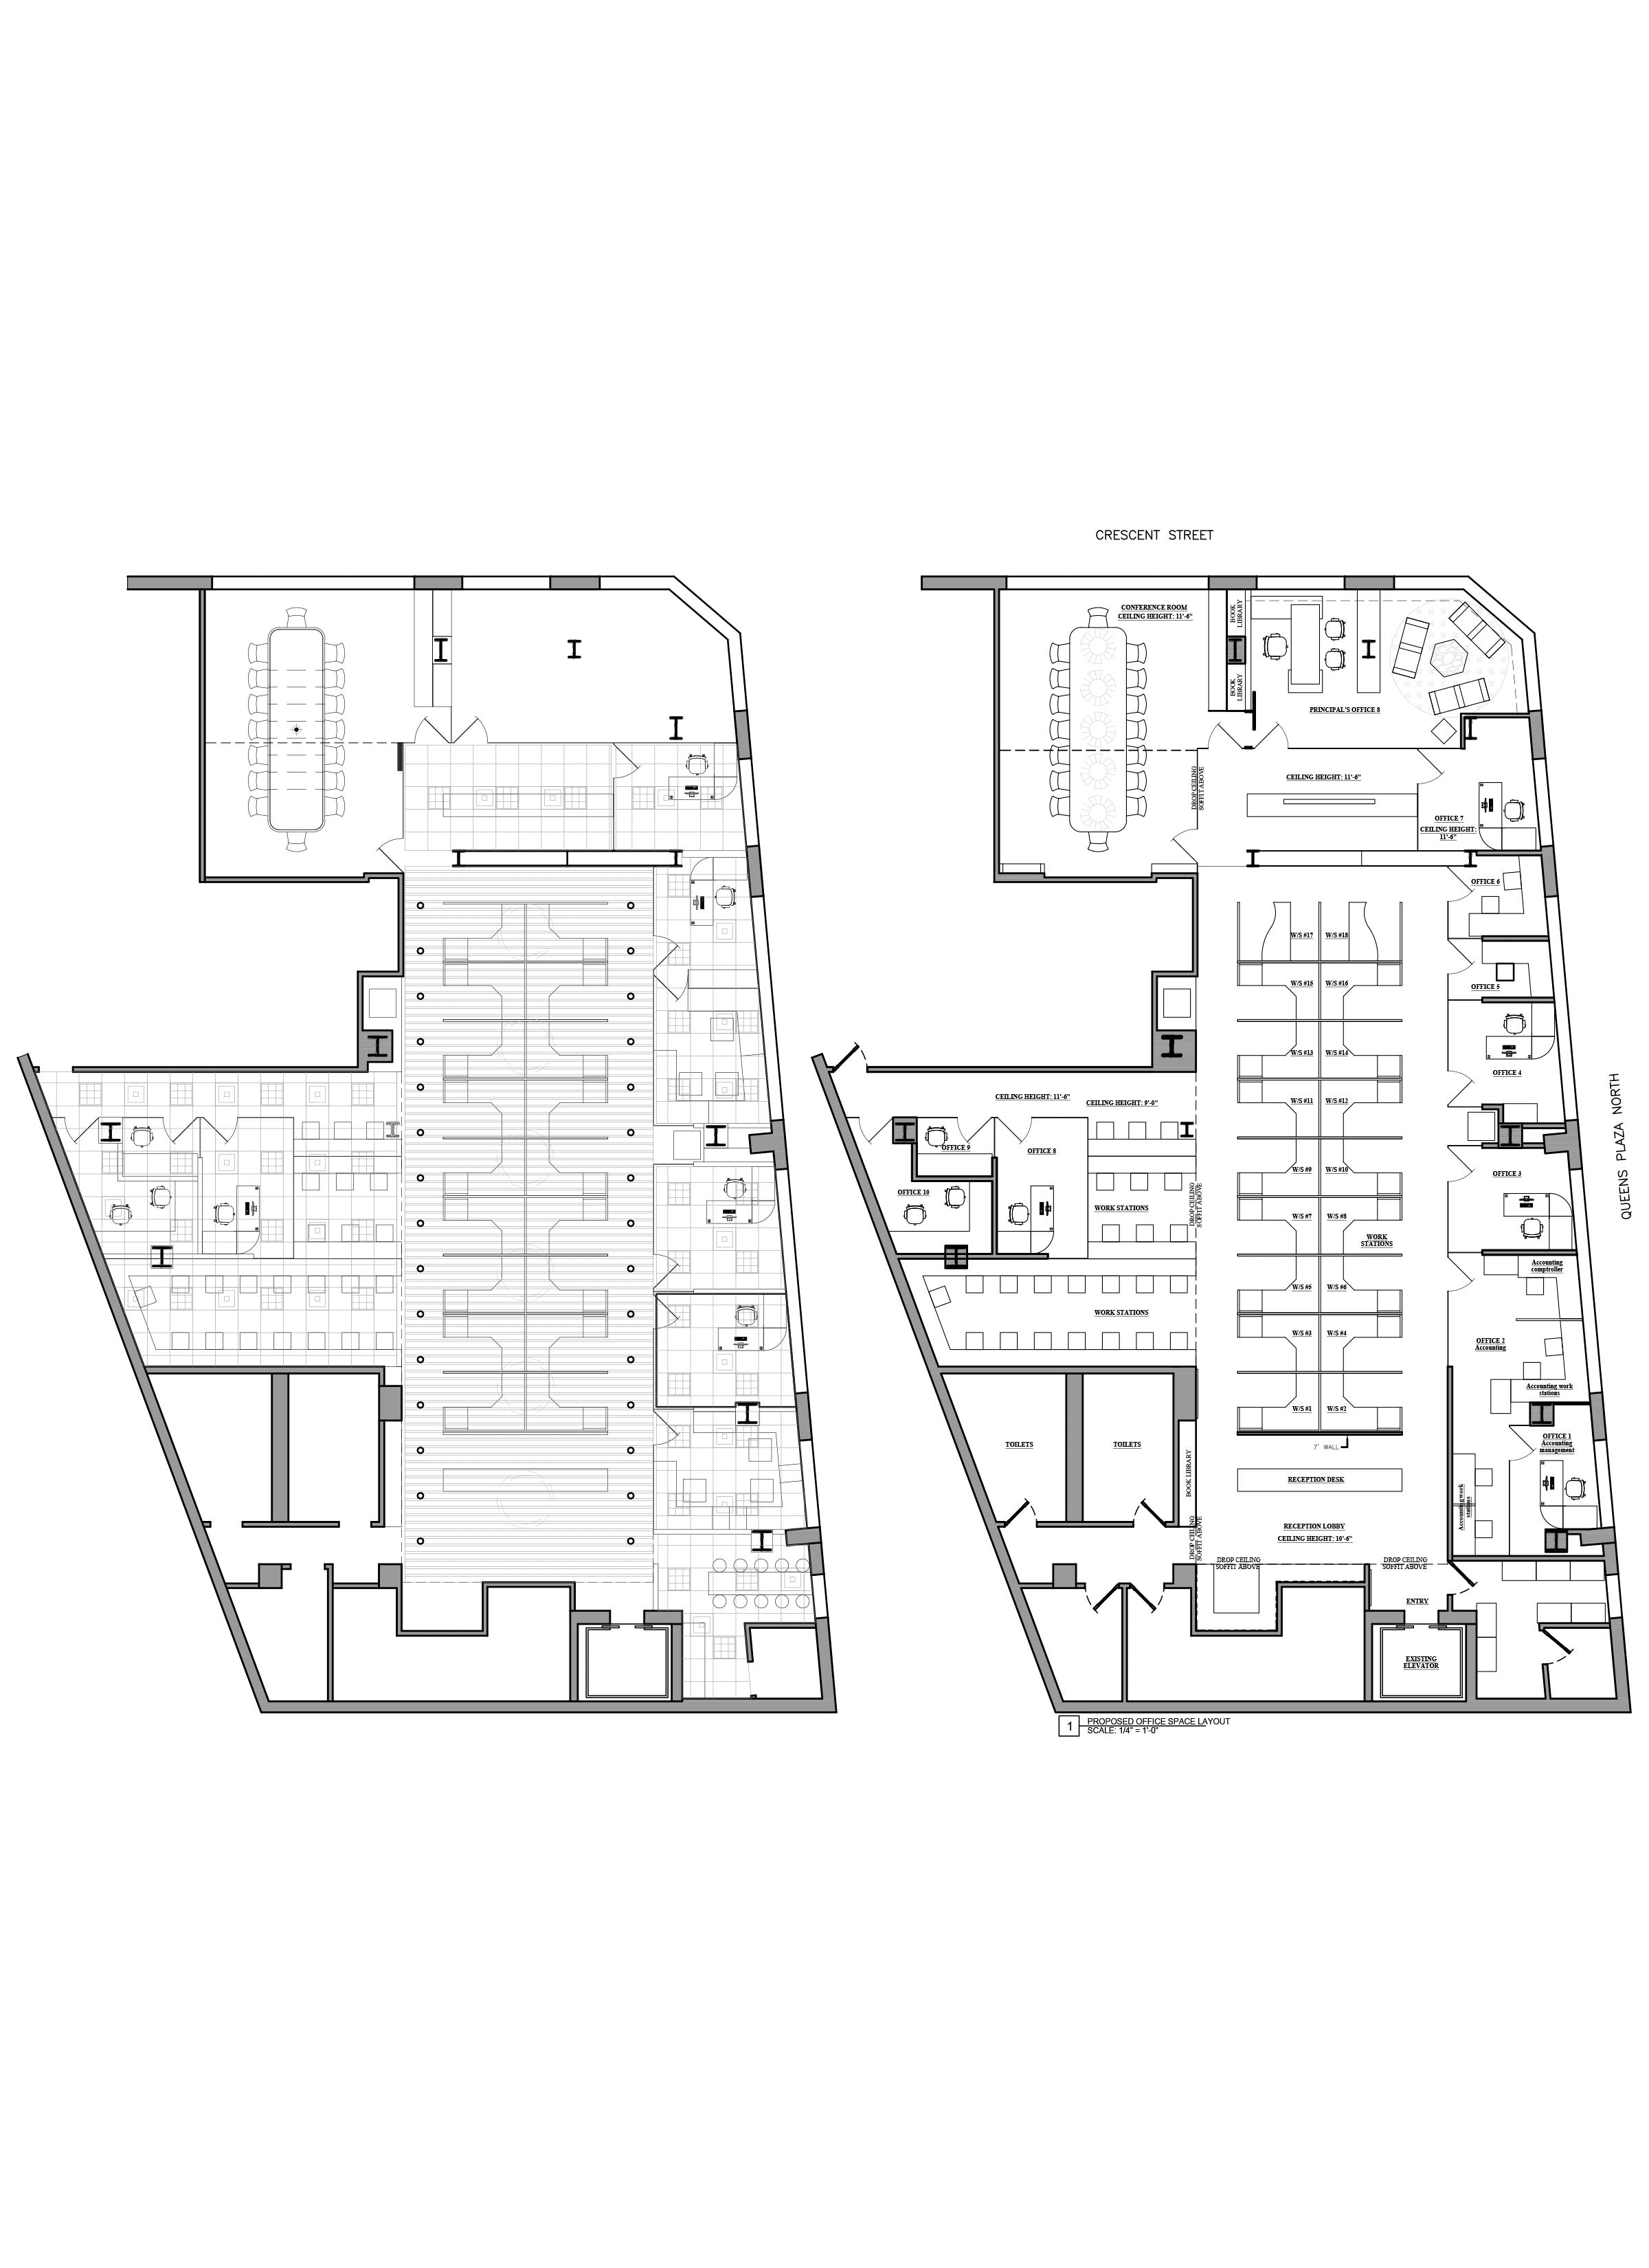 Floor Plan Design - Office Test Fit -As Built Drawings_Lawyers Office Queens, NY